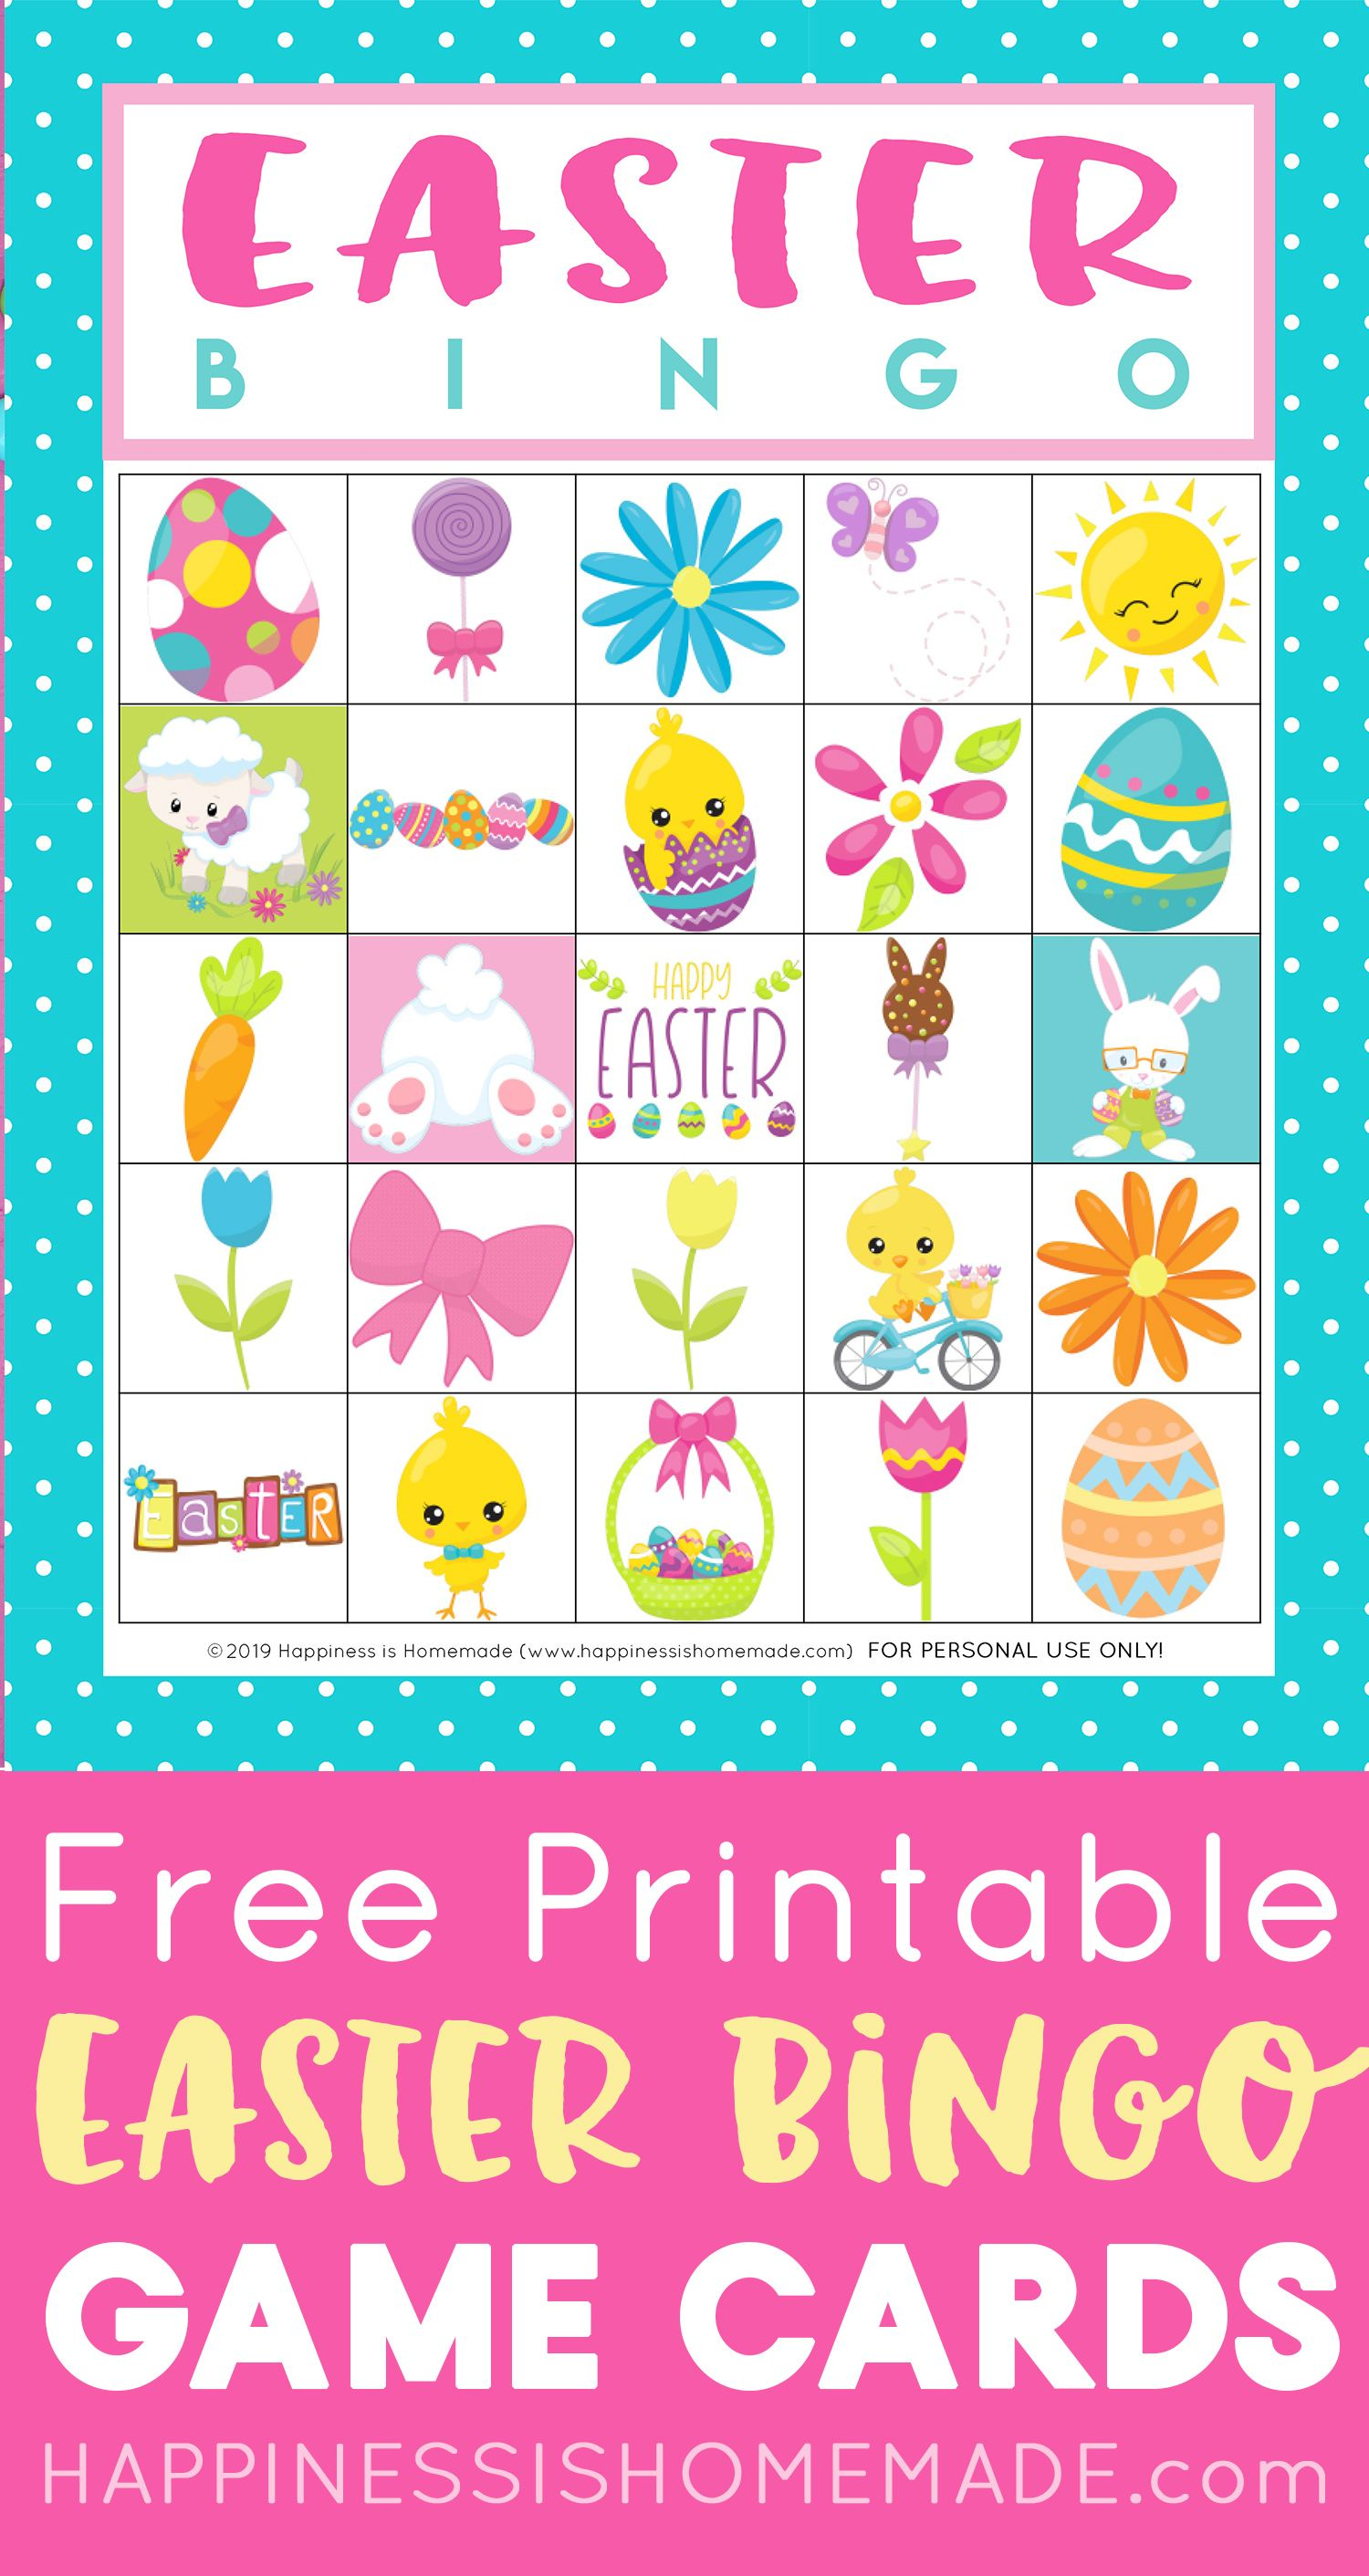 photo regarding Free Printable Easter Bingo Cards titled Absolutely free Printable Easter Bingo Sport Playing cards are a lot of exciting for